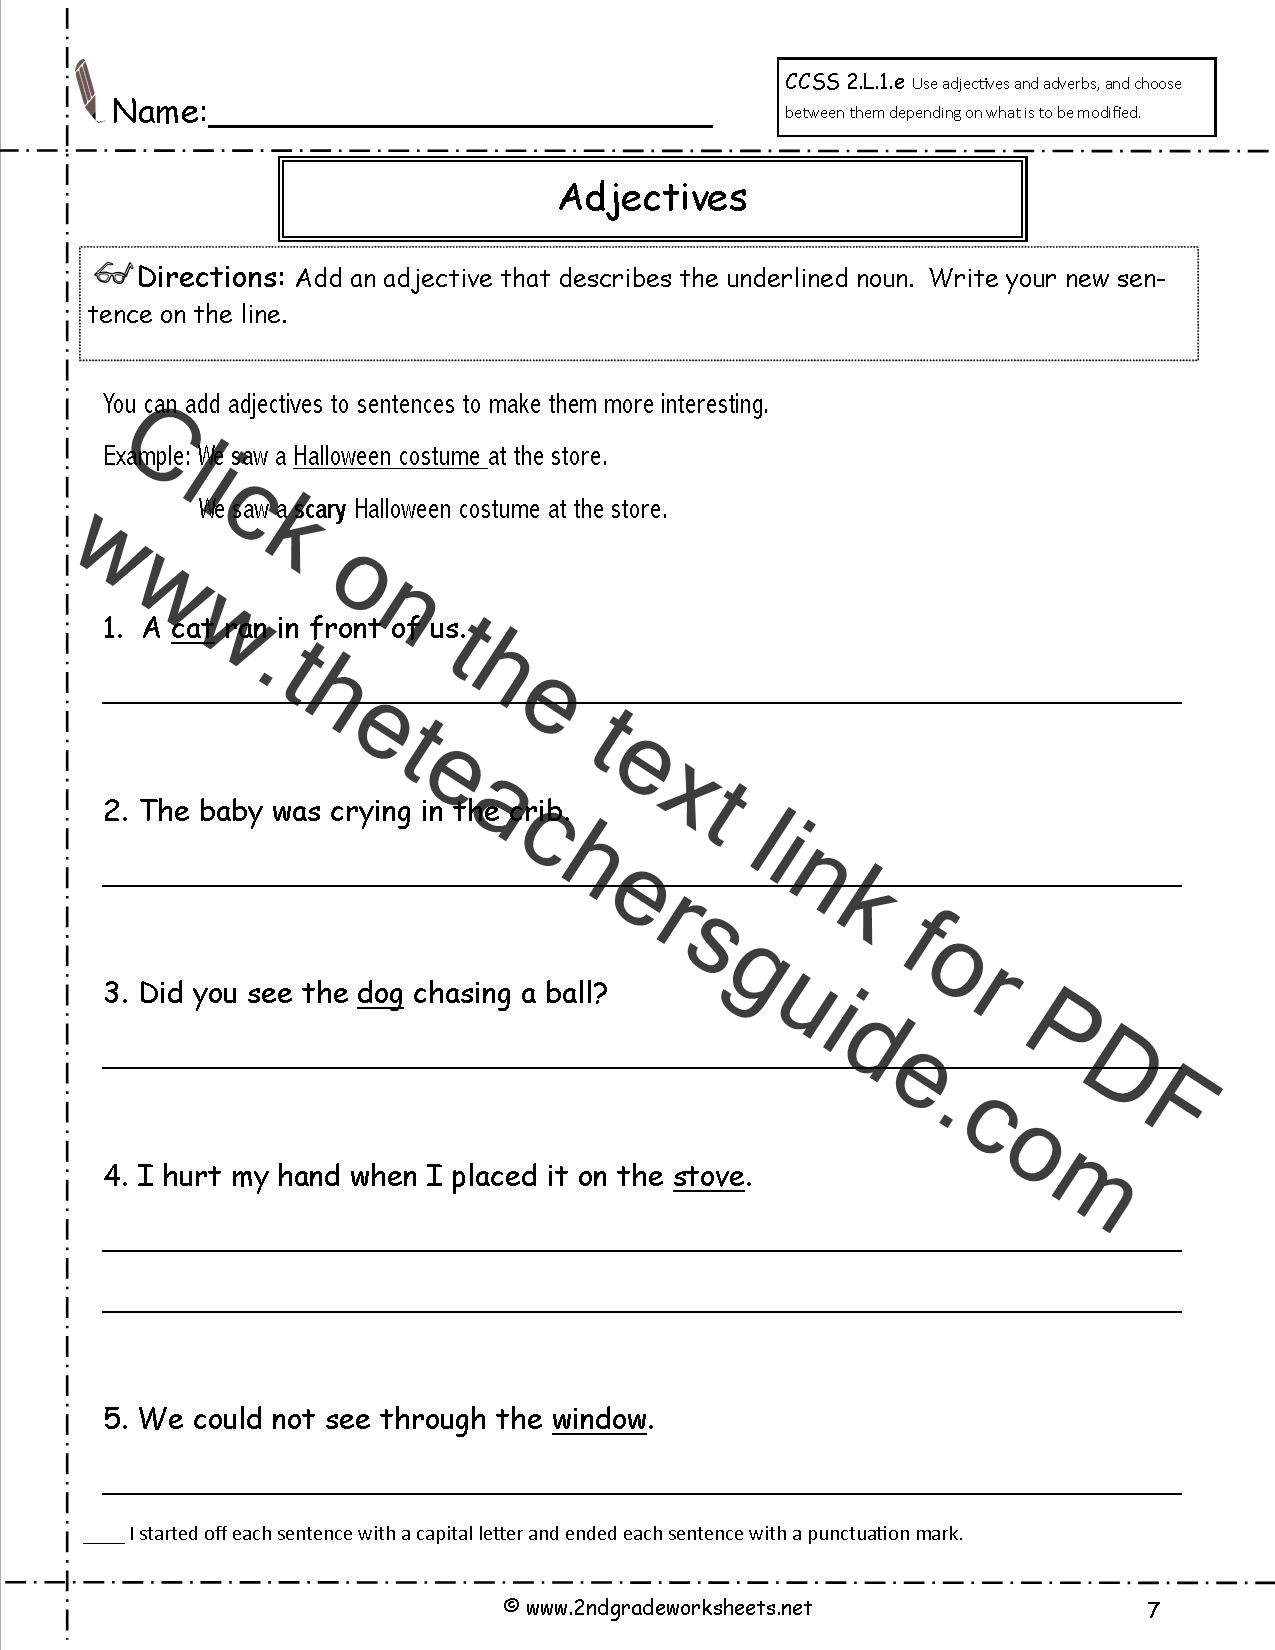 Worksheet On Adverbs Of Frequency For Grade 3